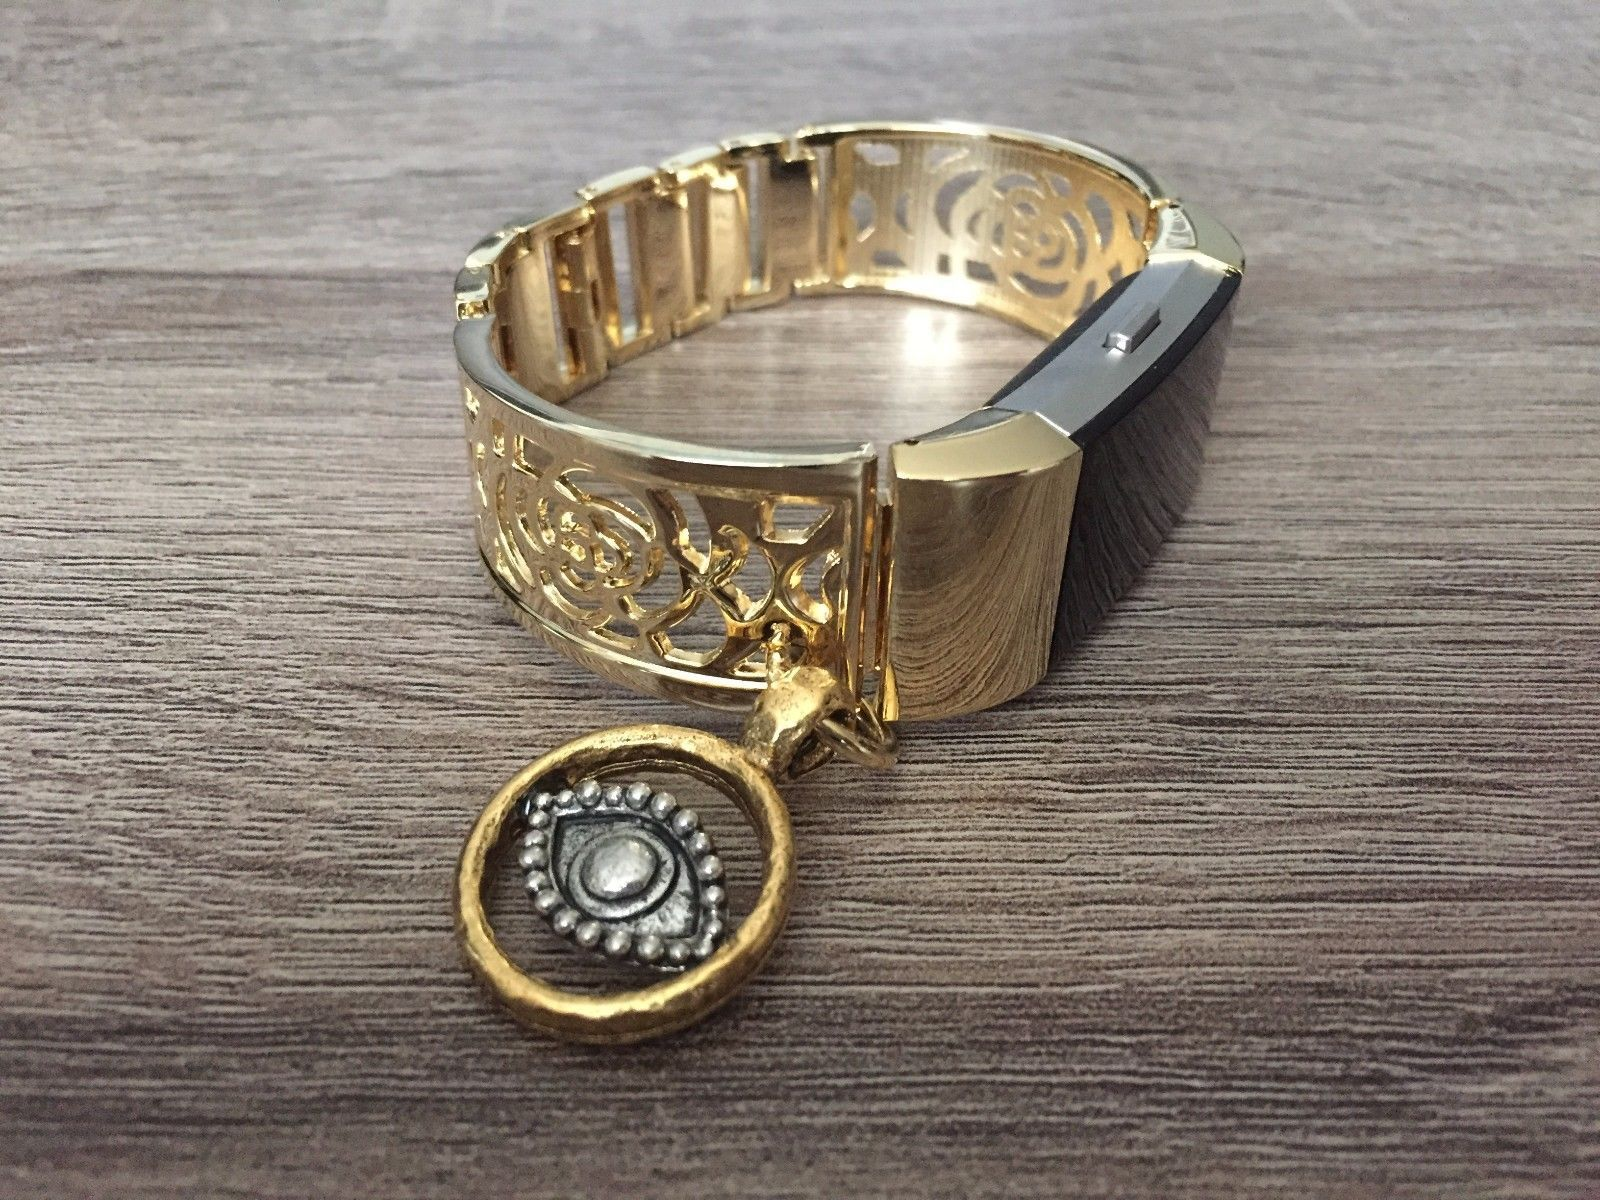 Handmade jewelry gold metal flower band with evil eye charm for